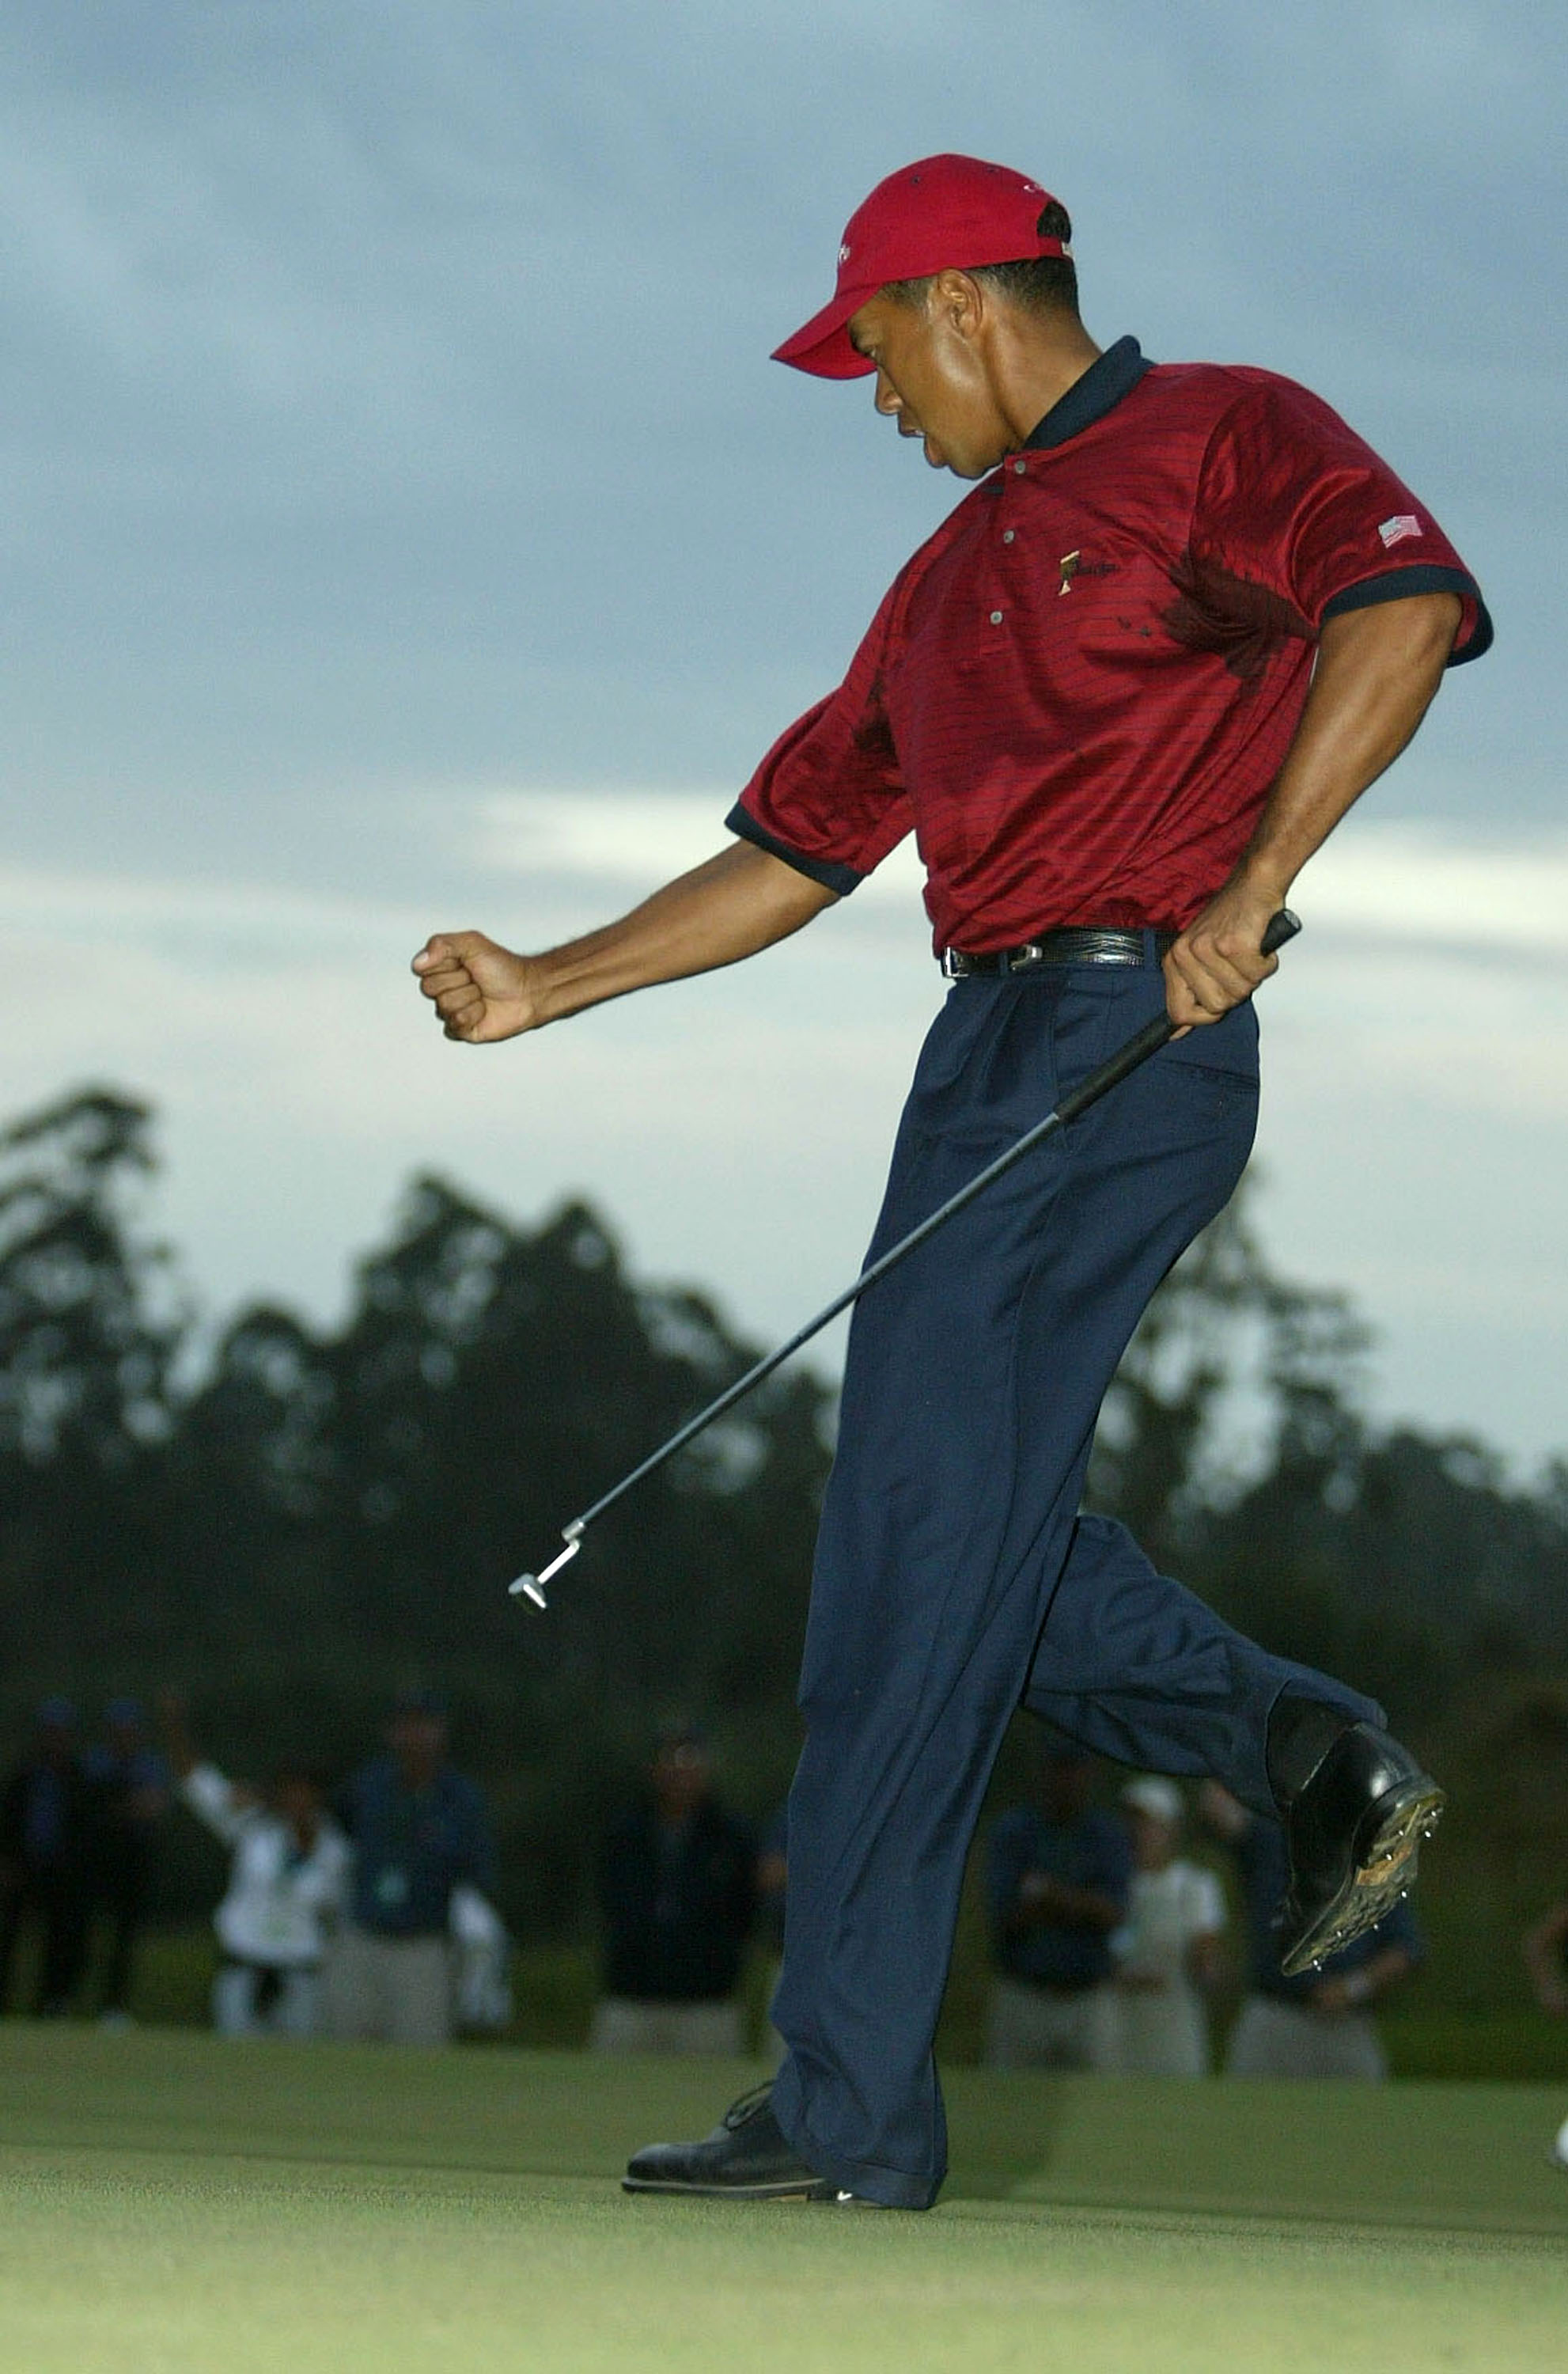 Tiger Woods celebrates a par-saving putt in a playoff against Ernie Els at the 2003 Presidents Cup.